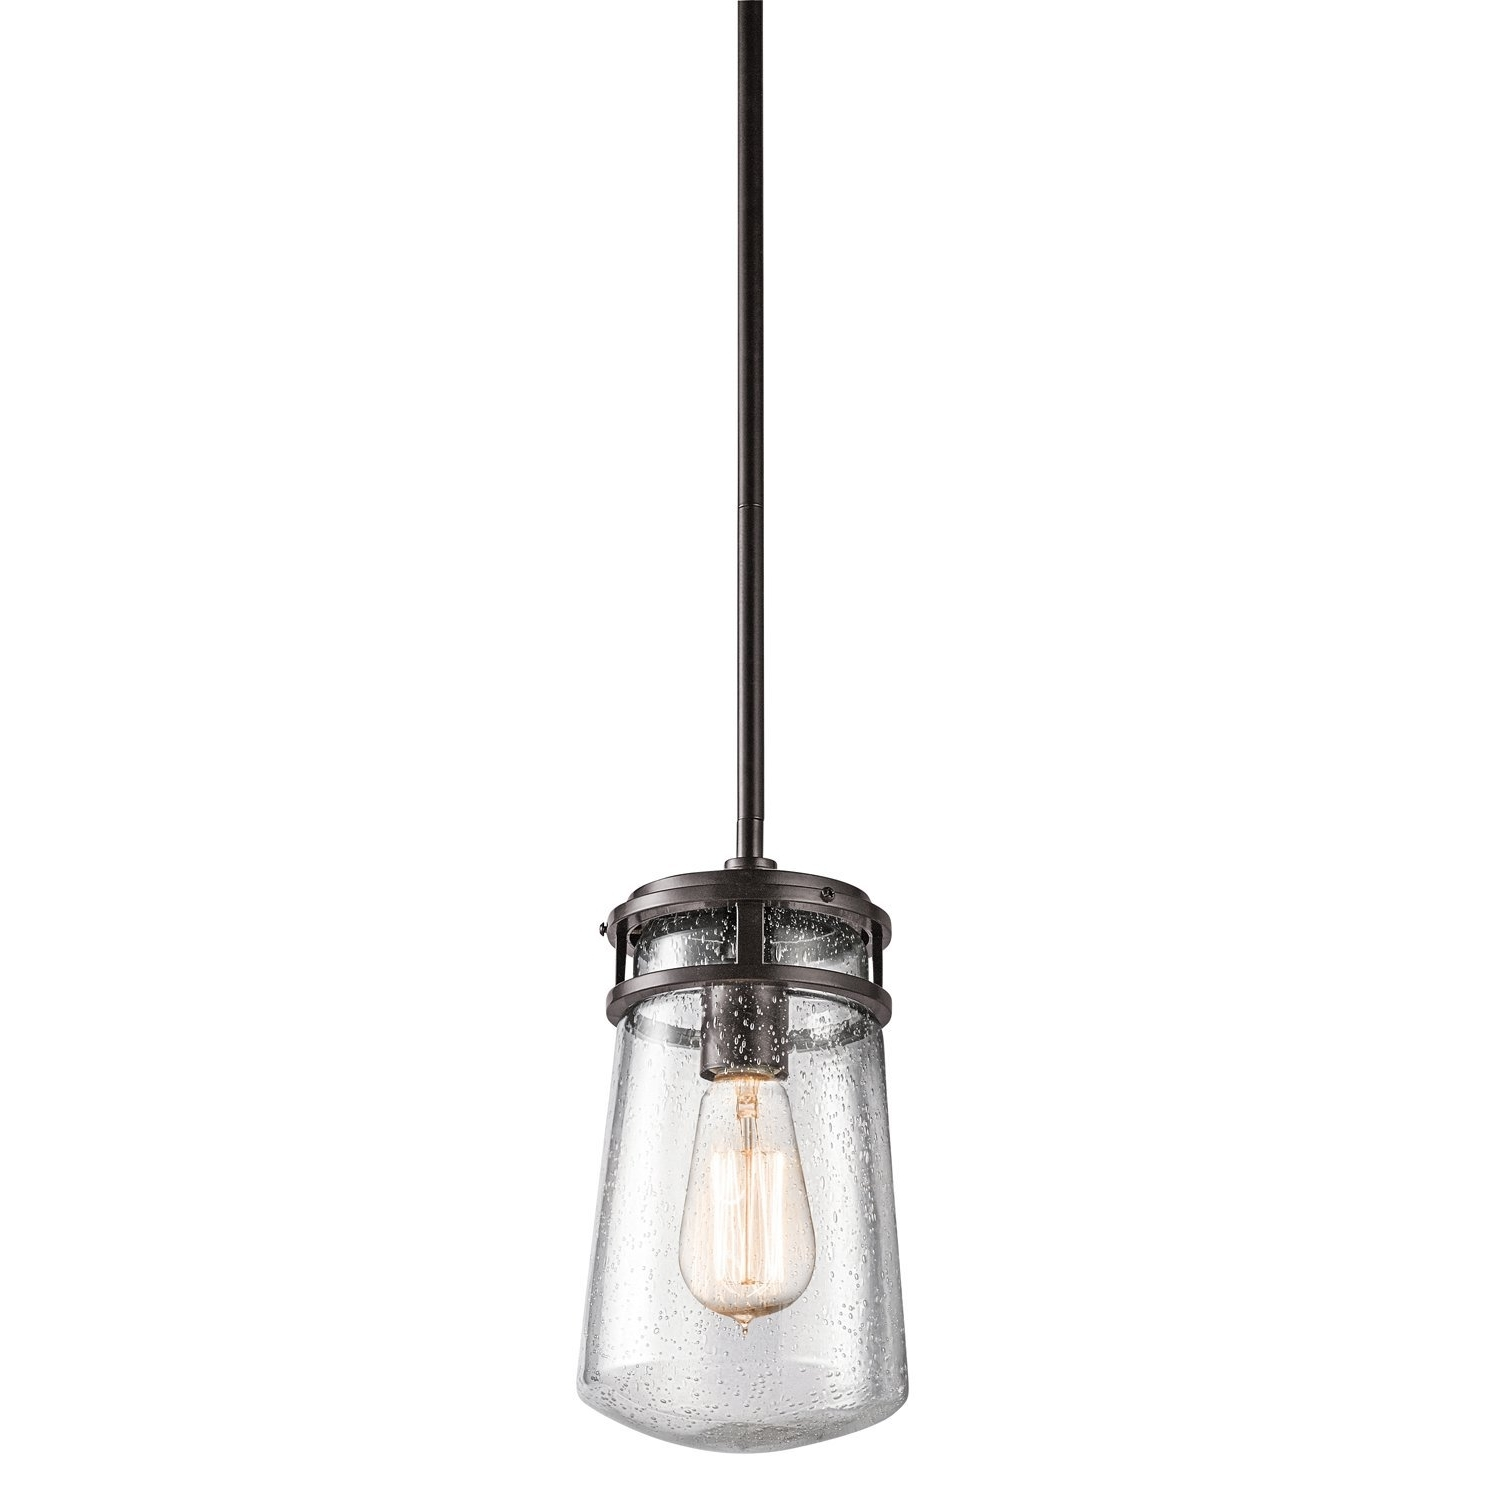 Contemporary Outdoor Pendant Lighting Inside Fashionable Ceiling Fans Hanging Light Pendants Exterior Pendant Lights (View 20 of 20)